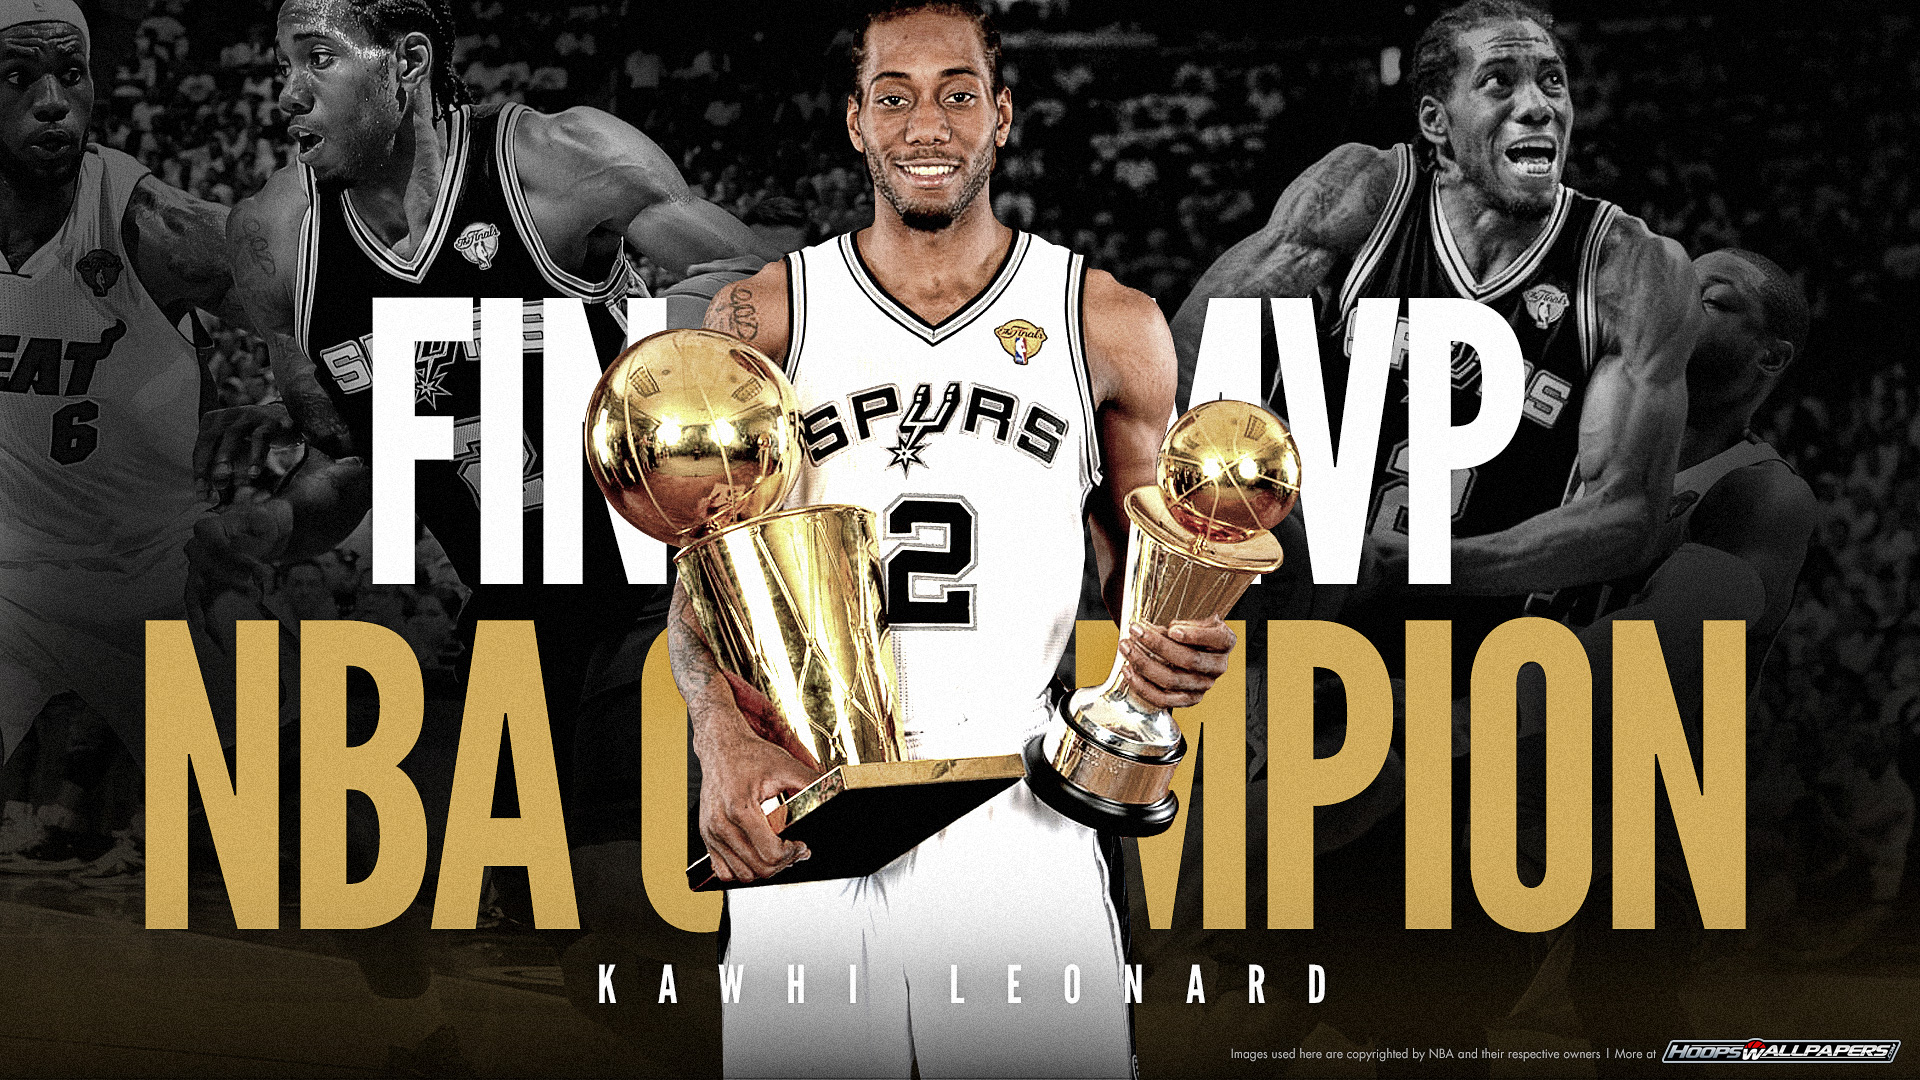 NBA Champion Finals MVP Kawhi Leonard Wallpaper Click On The Image For Full HD Resolution